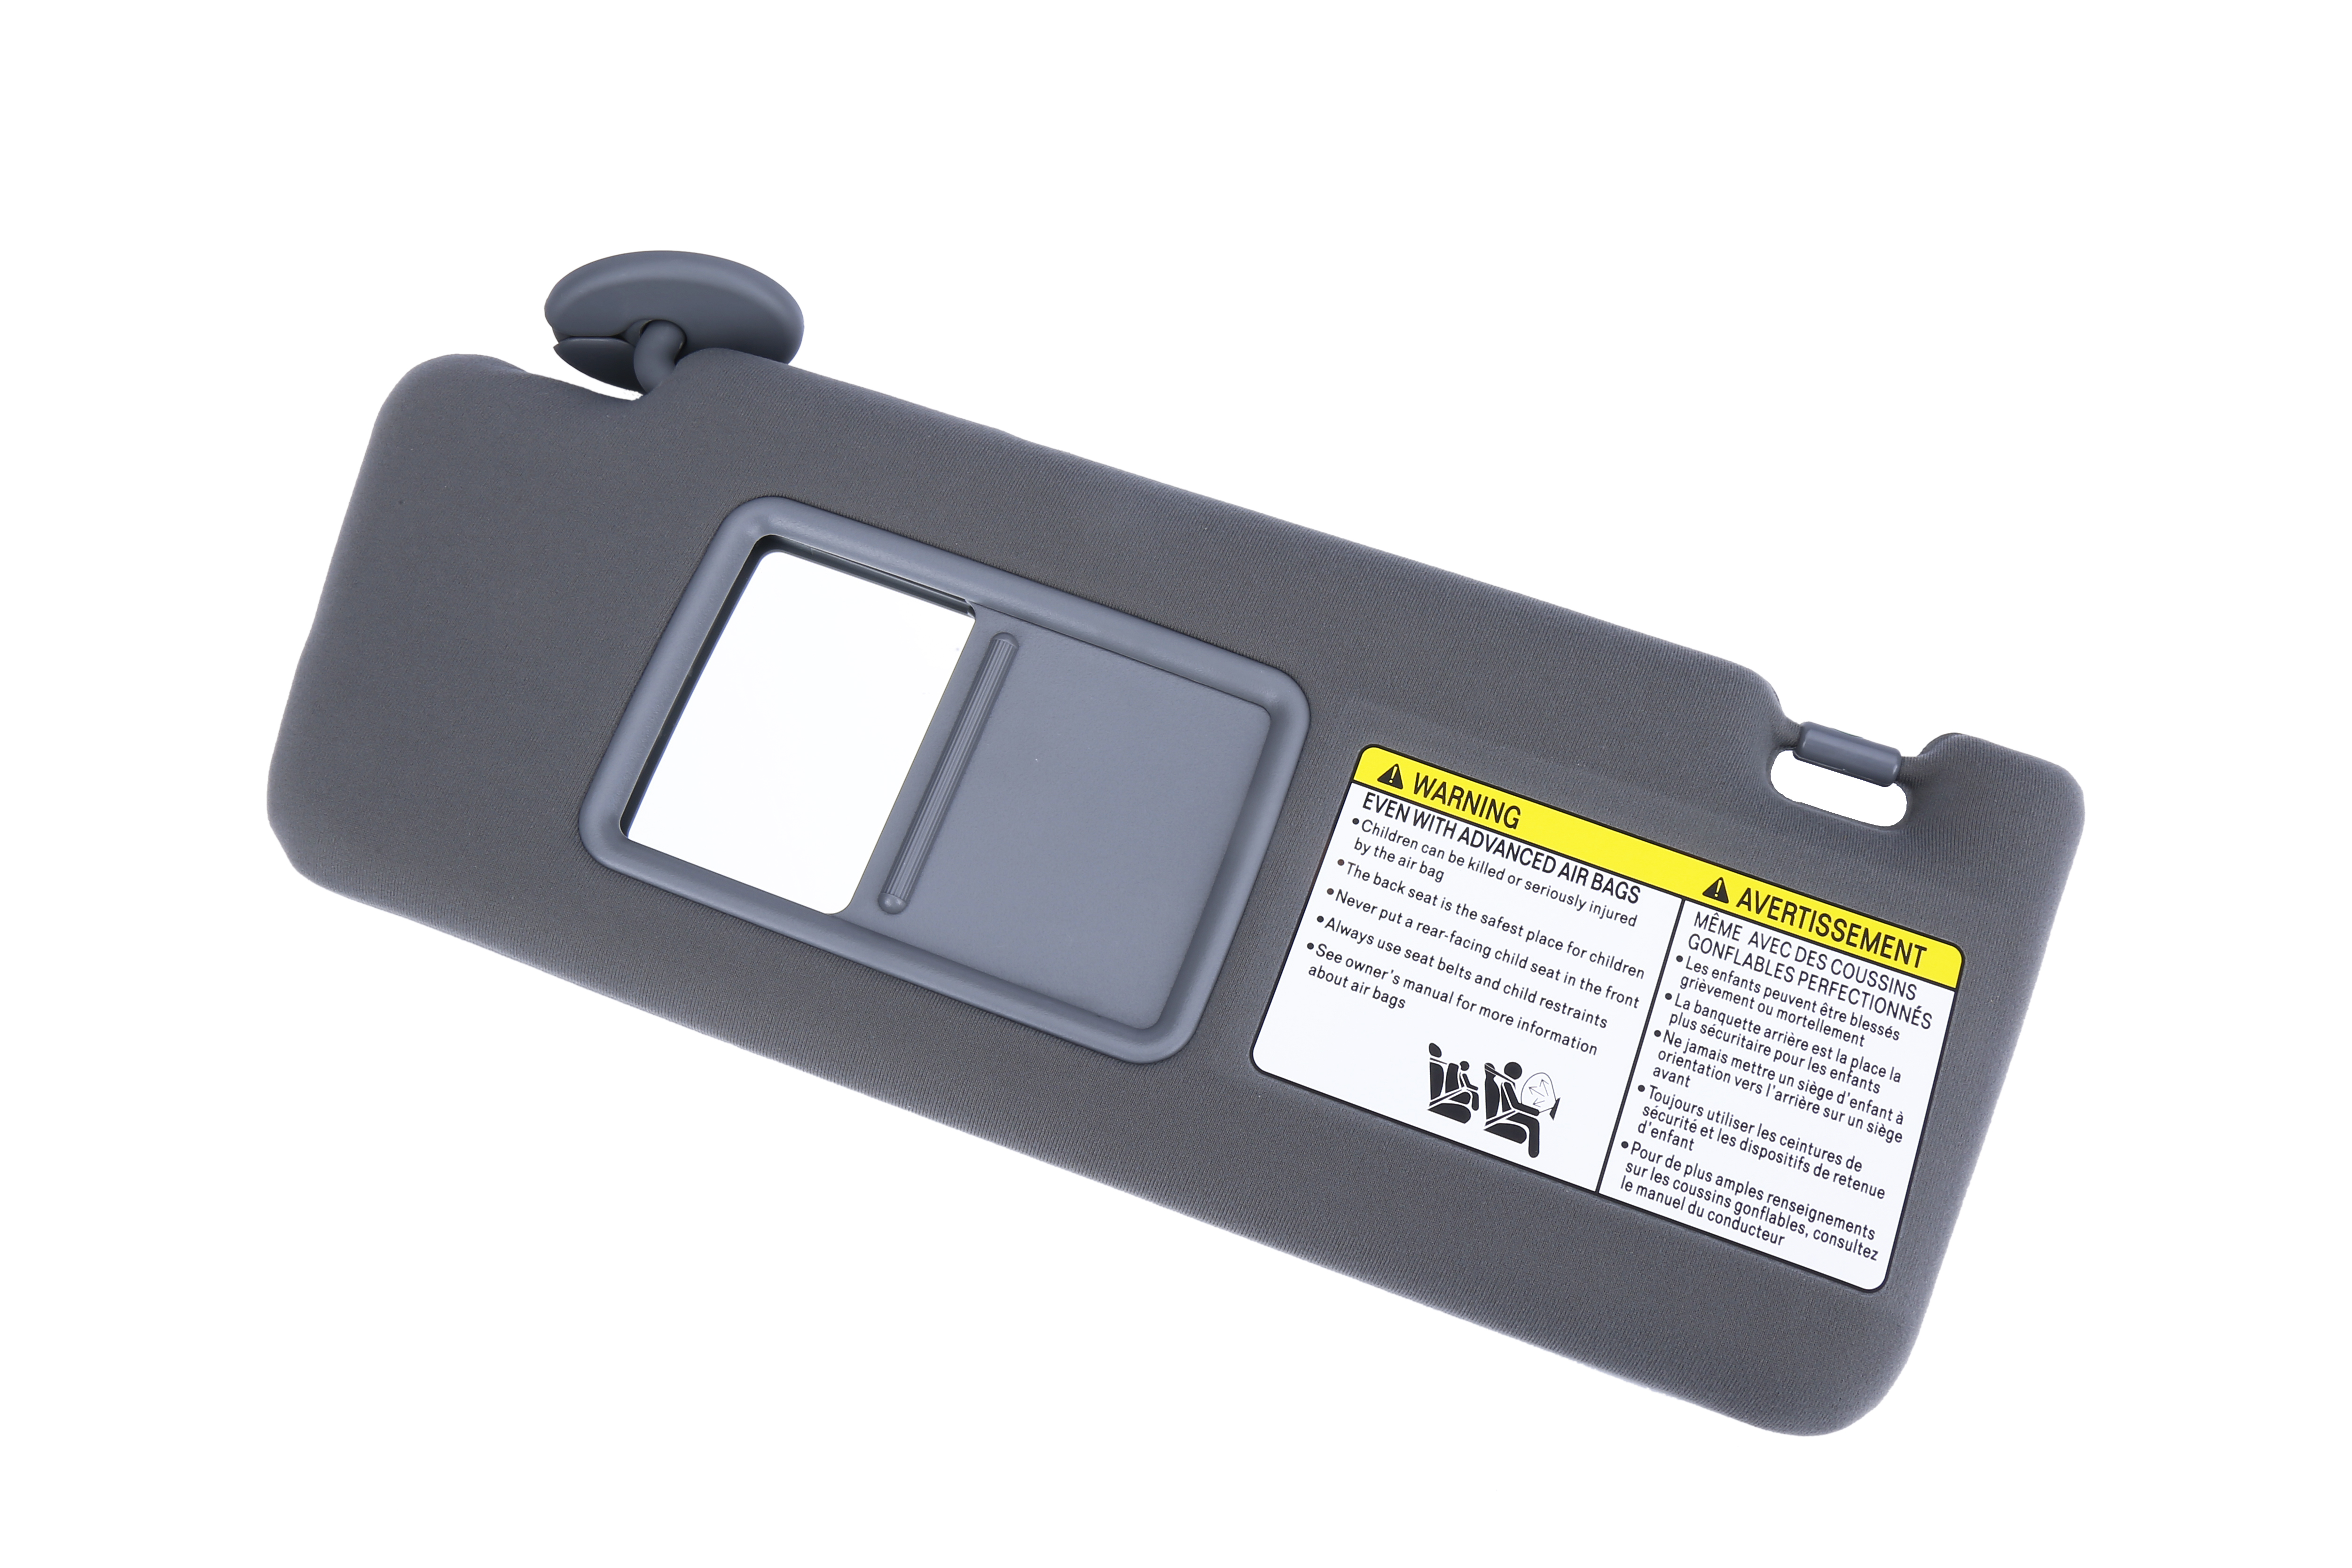 Driver Side Sun Visor Gray Without Light - Fits Toyota Tacoma 2005- 2012 - Replaces 74320-04181-B1 Image